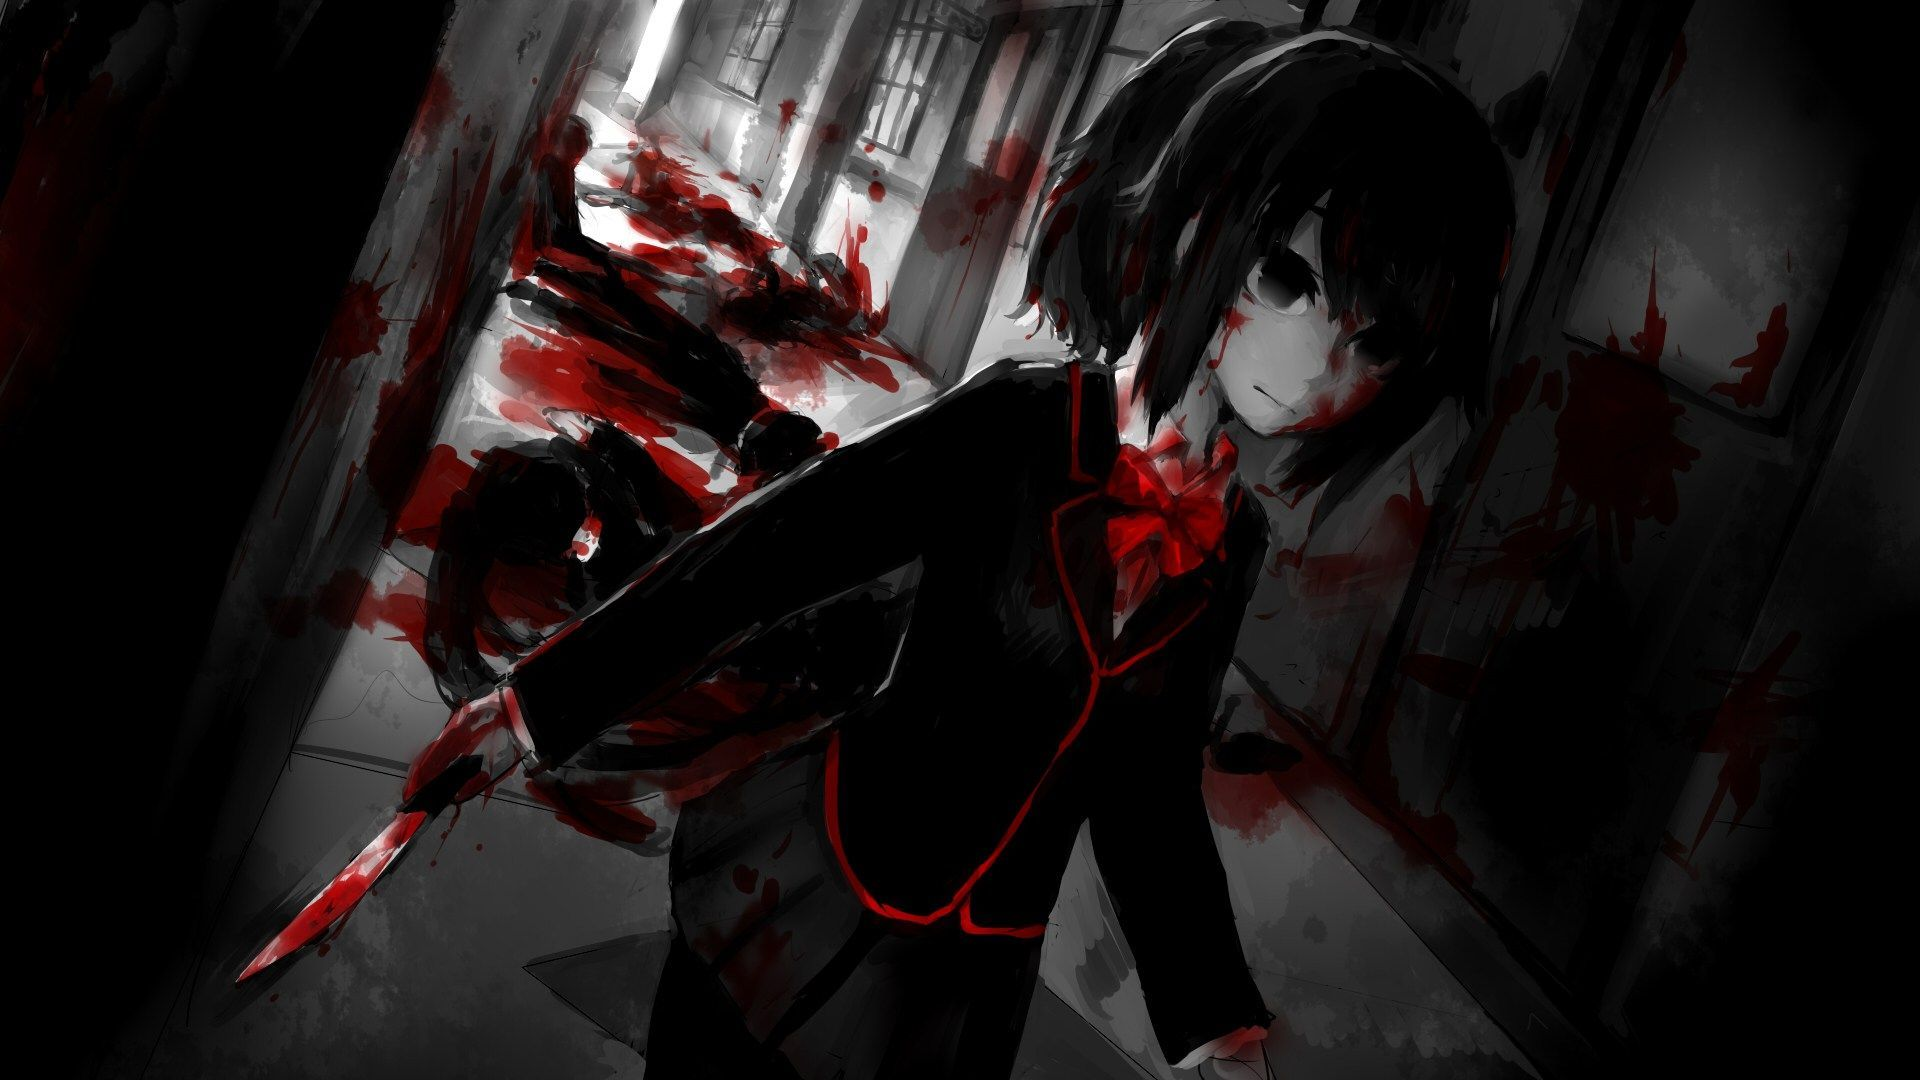 Anime Yandere Wallpaper Hd